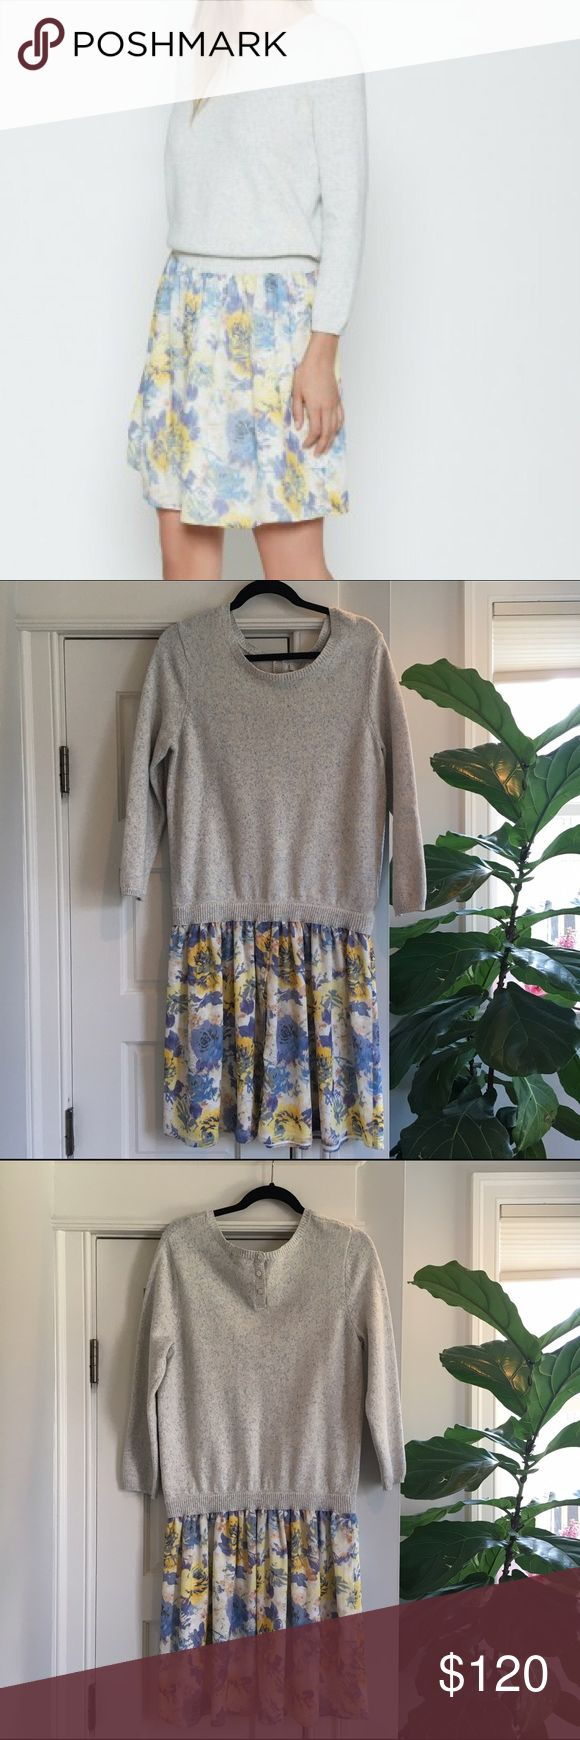 Joie Dessa Sweater Dress Joie Dessa sweater dress. Sweater and silk skirt layered look, so fresh for spring! Brand new with tags. Size large. Materials of Sweater portion: 80% cotton, 20% nylon; skirt portion: 100% silk. Joie Dresses